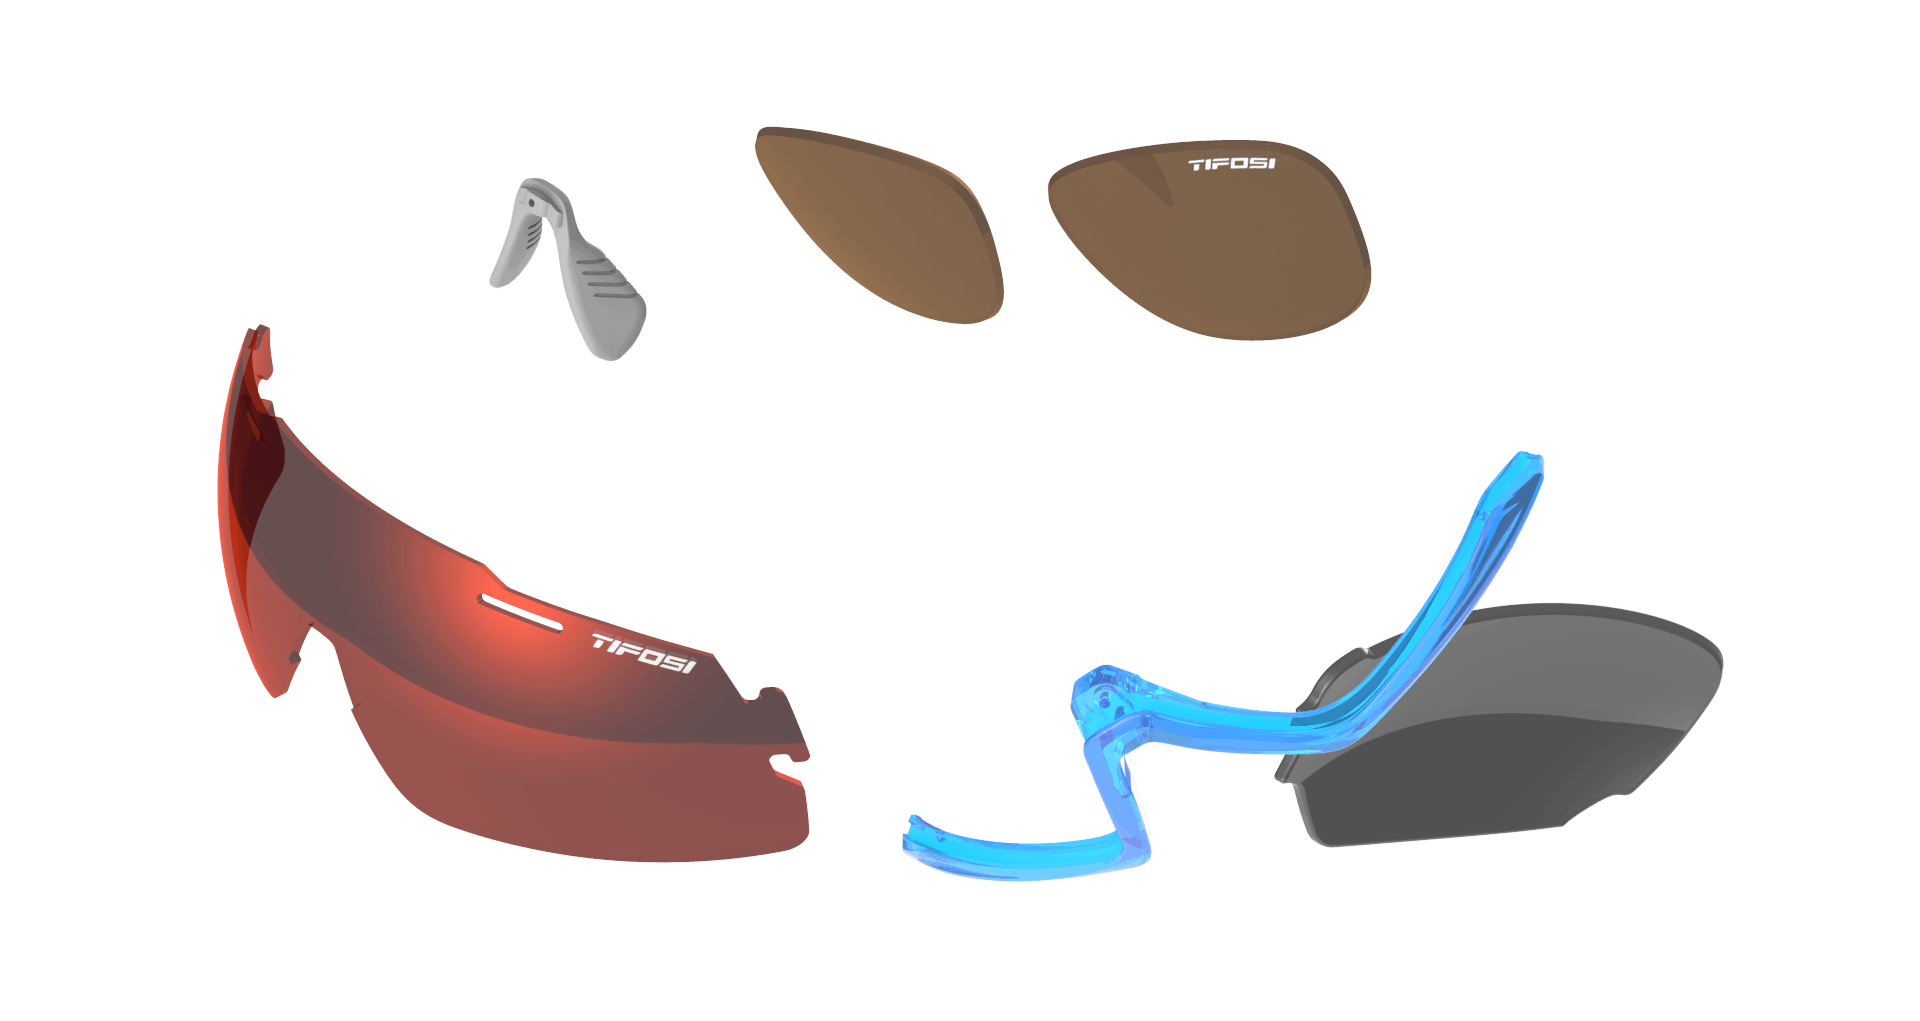 small parts sunglasses